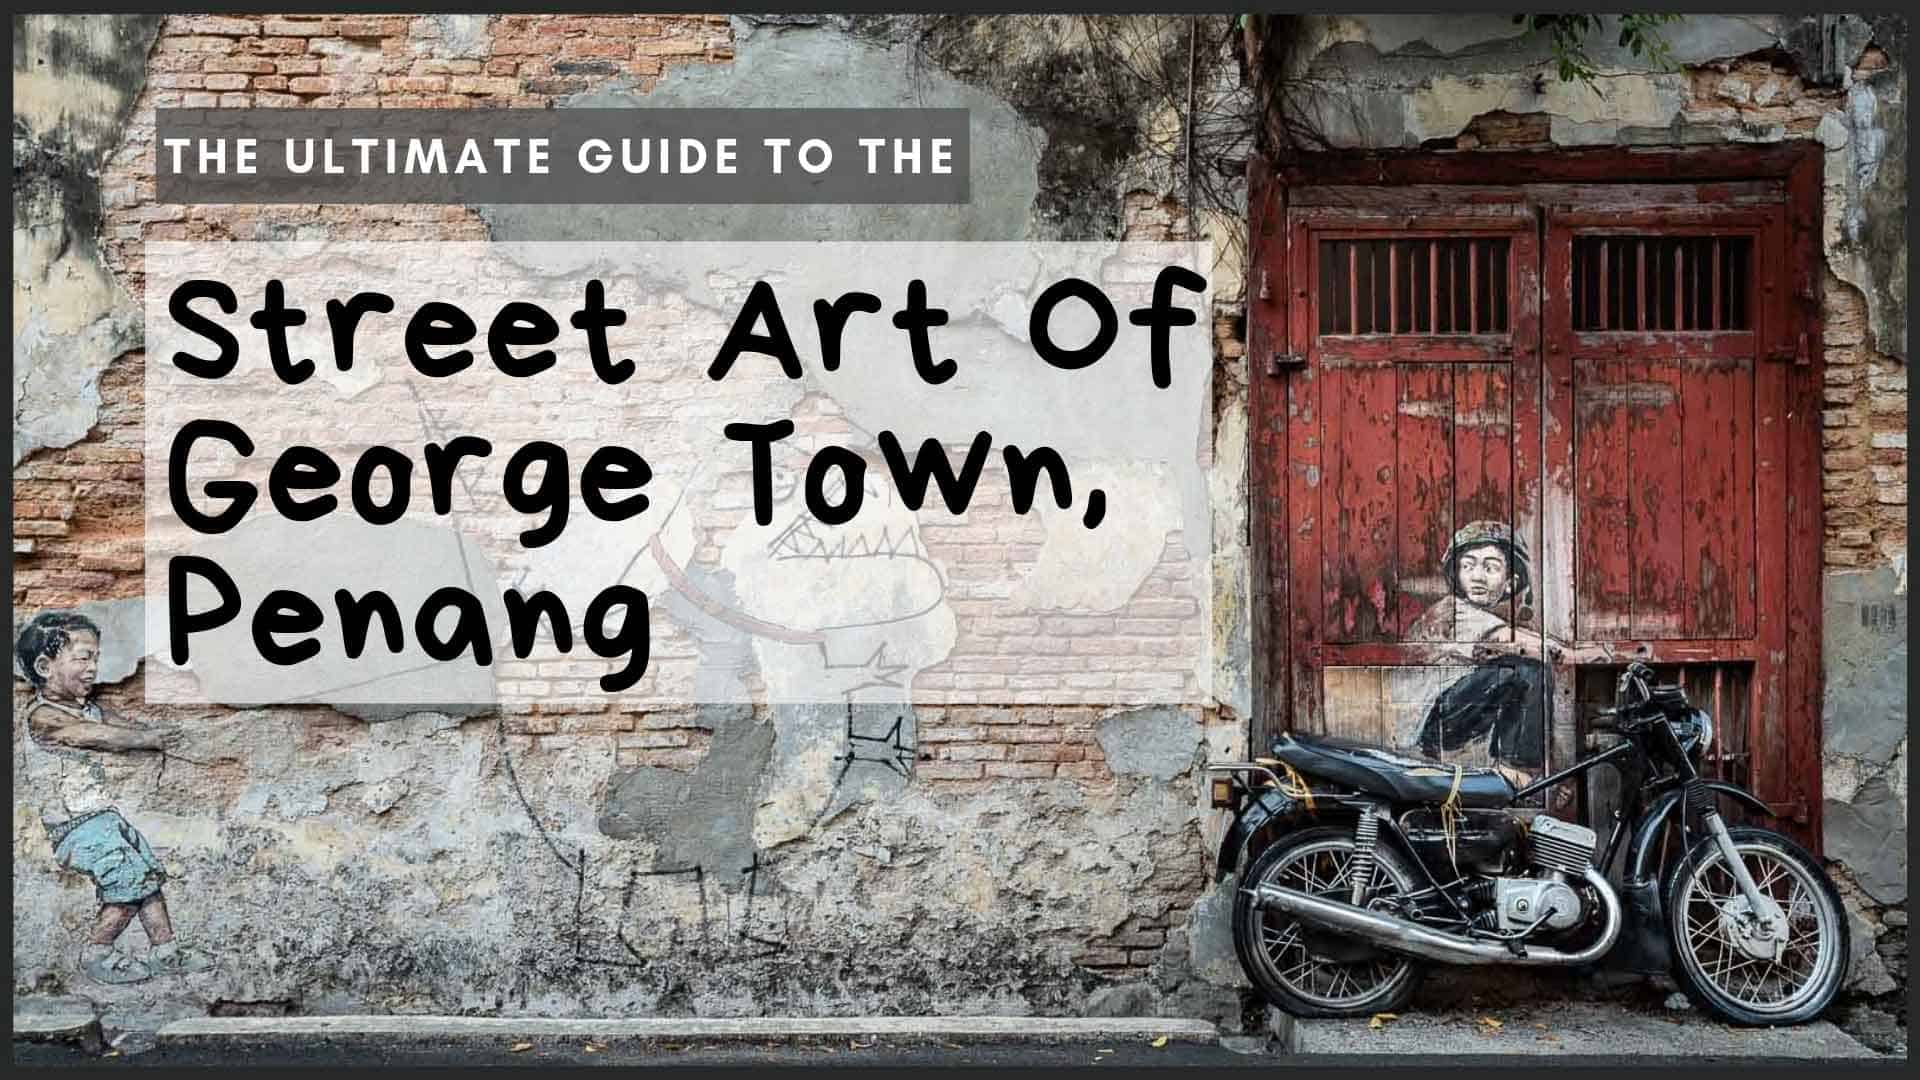 The Ultimate Guide To The Street Art Of George Town, Penang